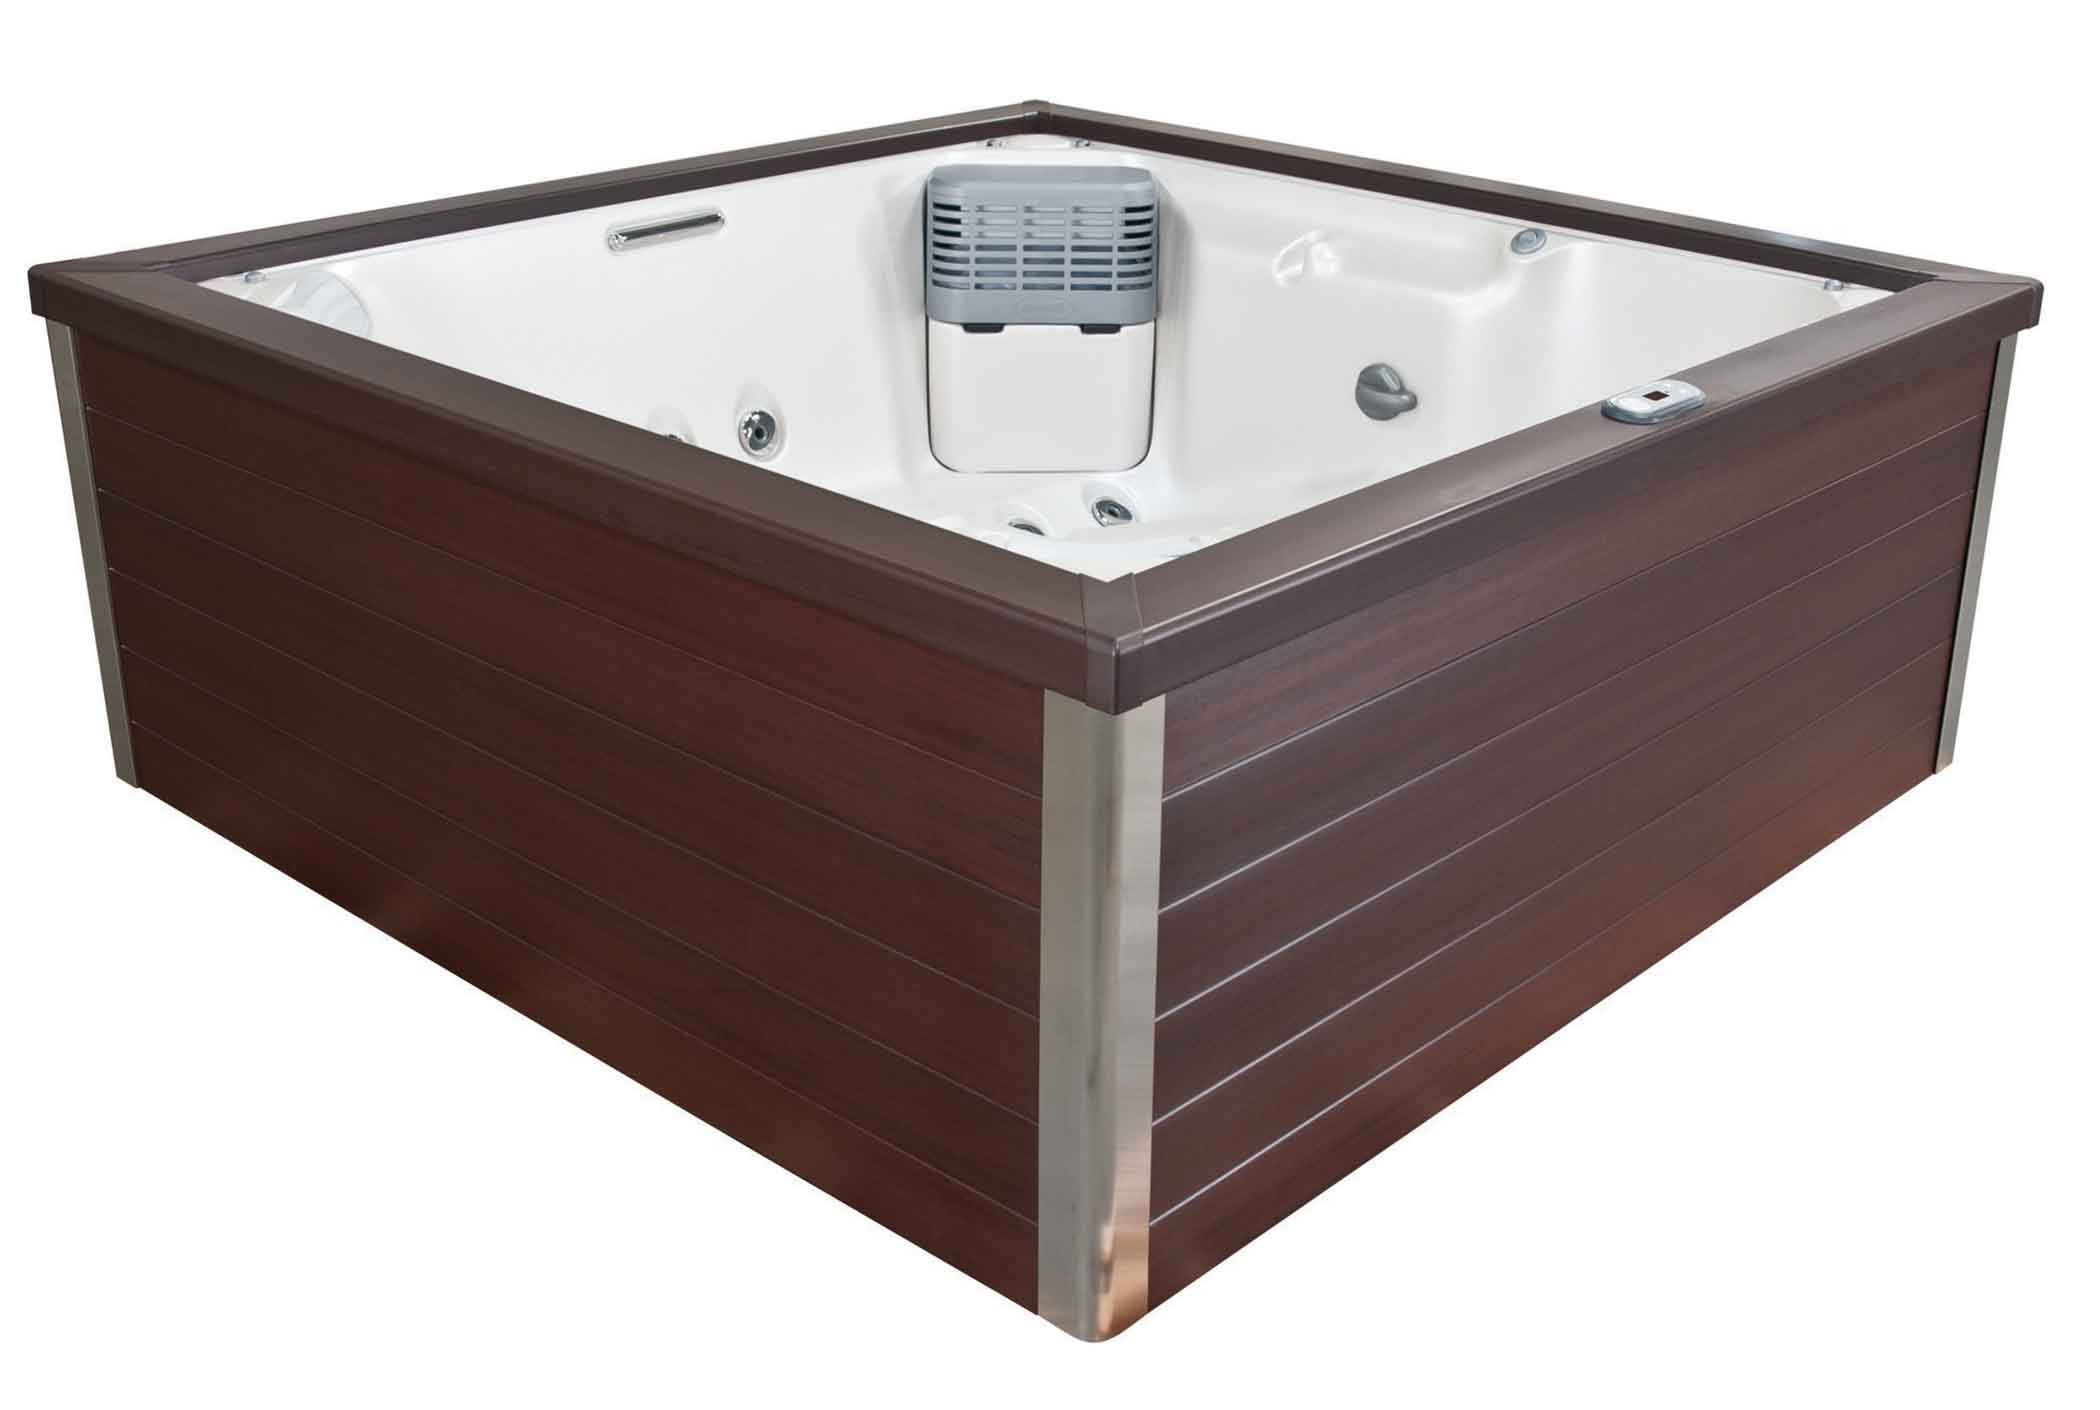 J-LXL® hot tub in Manitoba